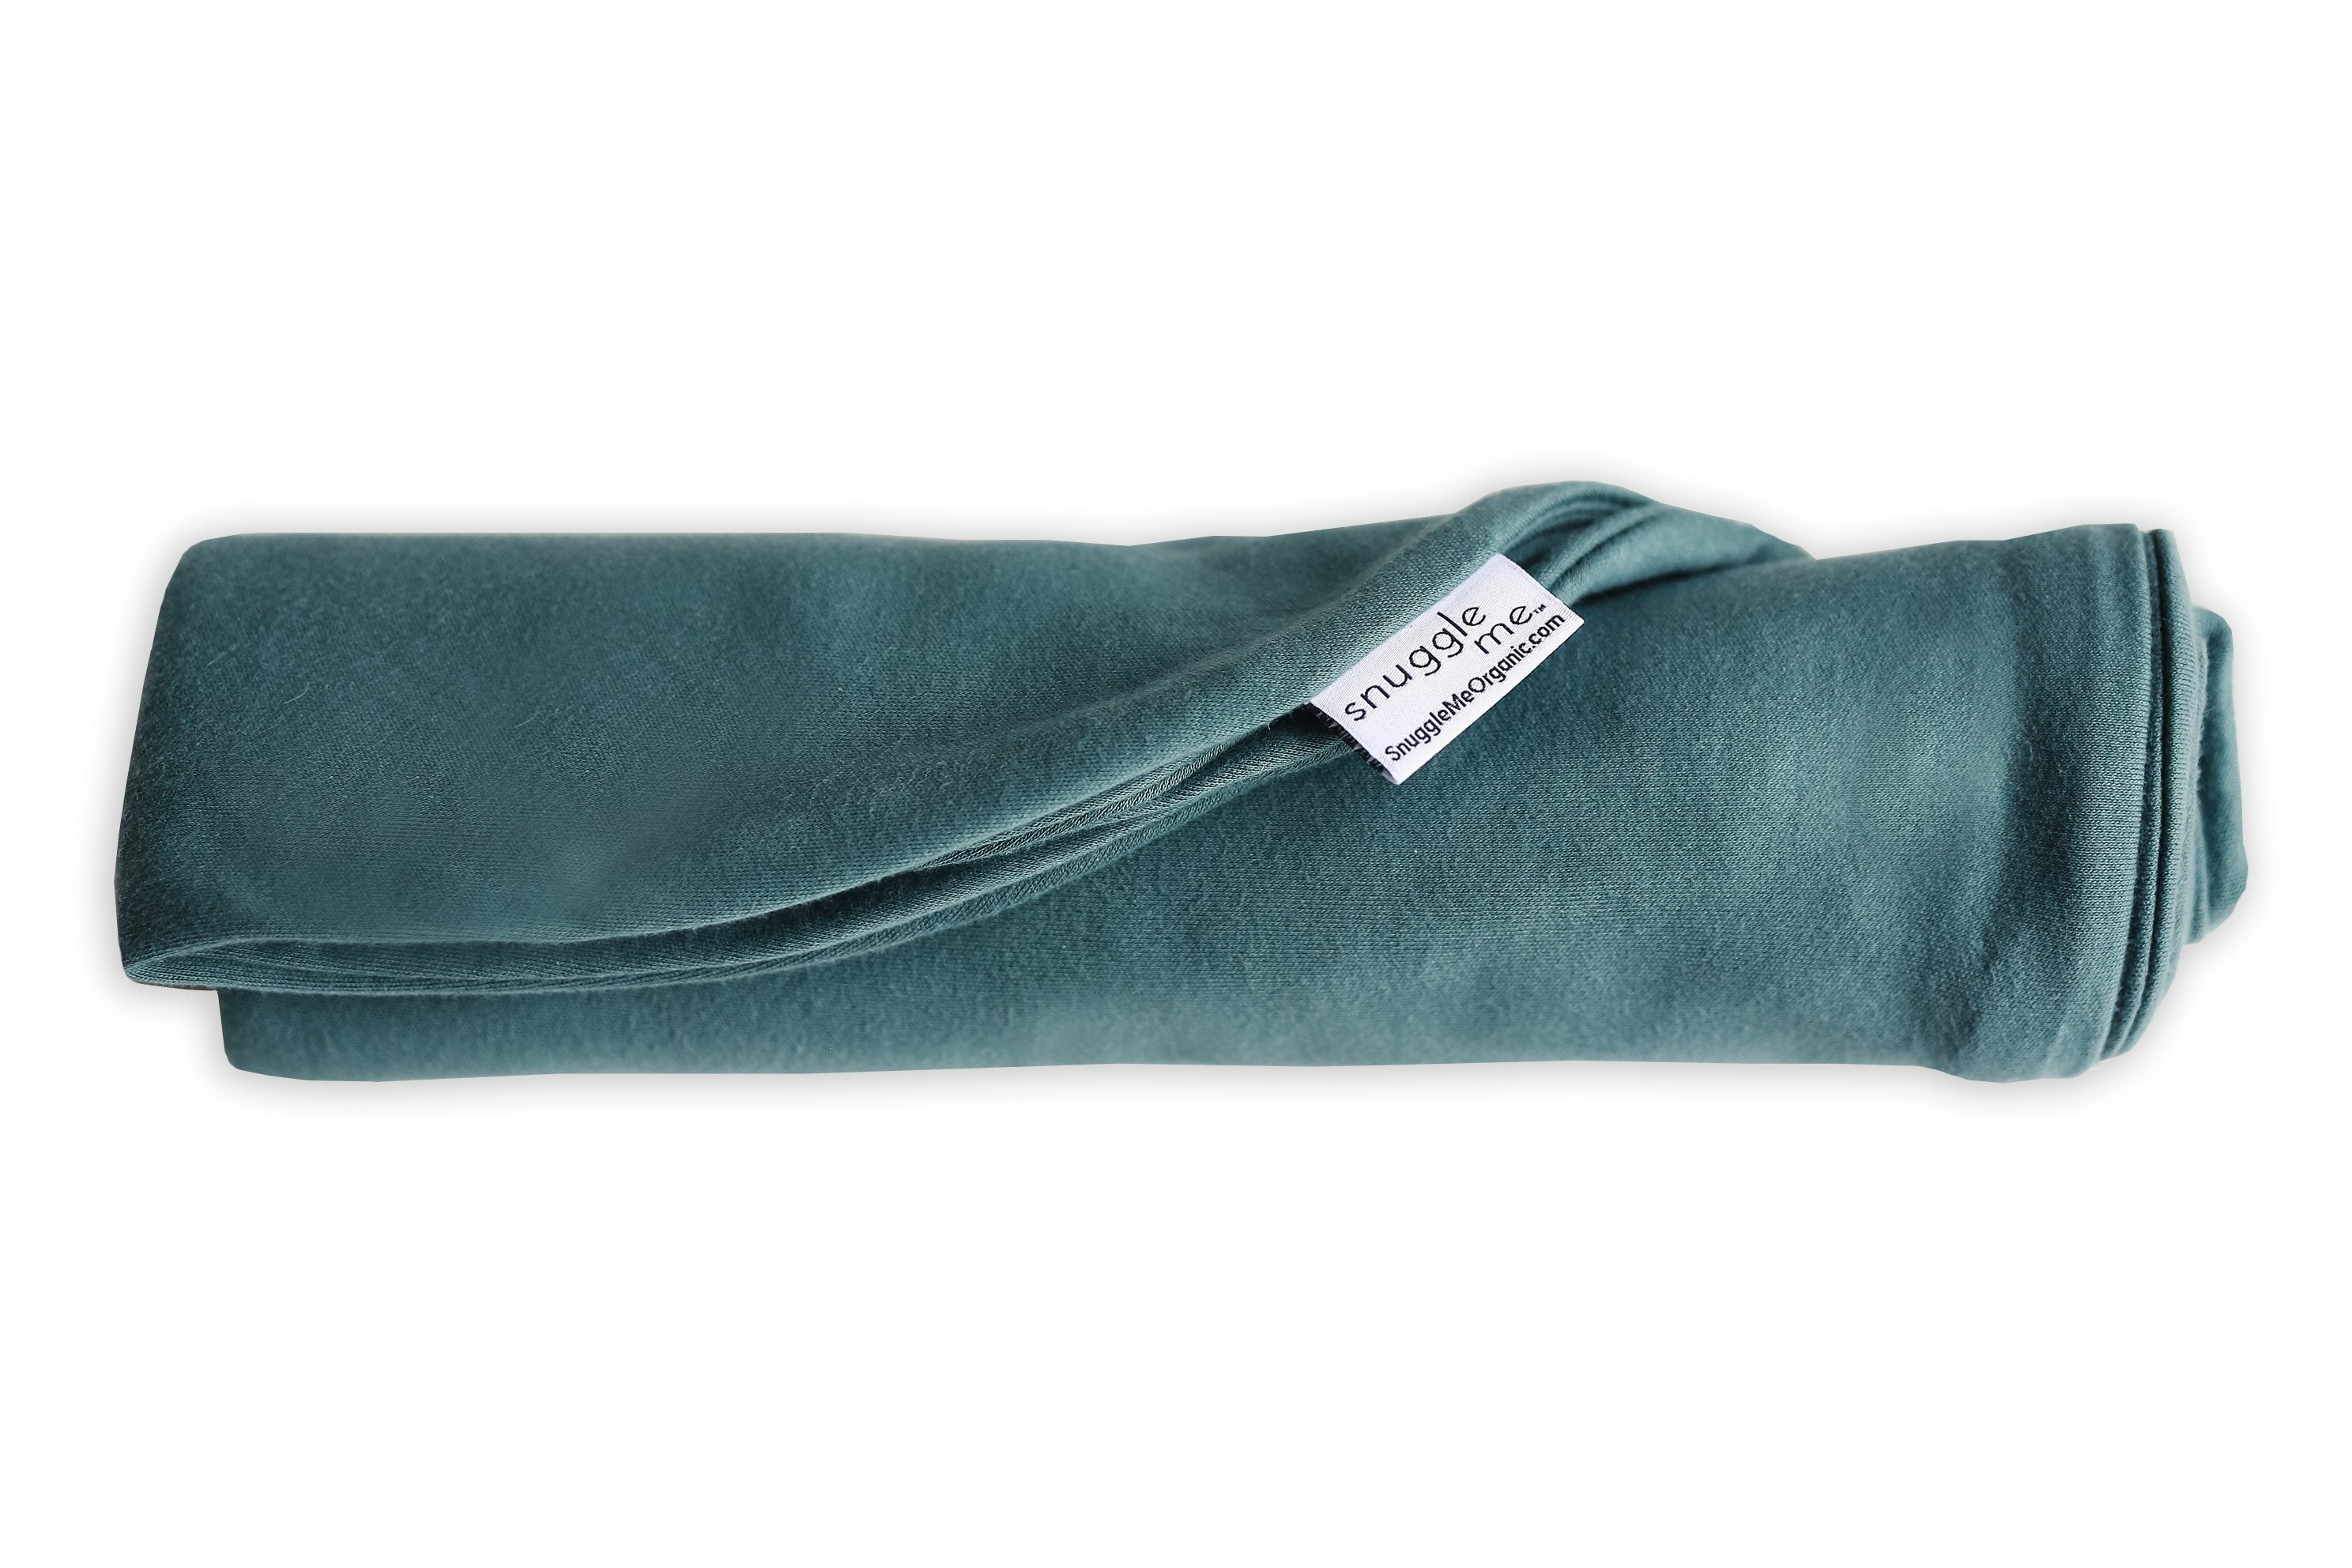 Snuggle Me Organic Lounger + Moss Cover - Project Nursery